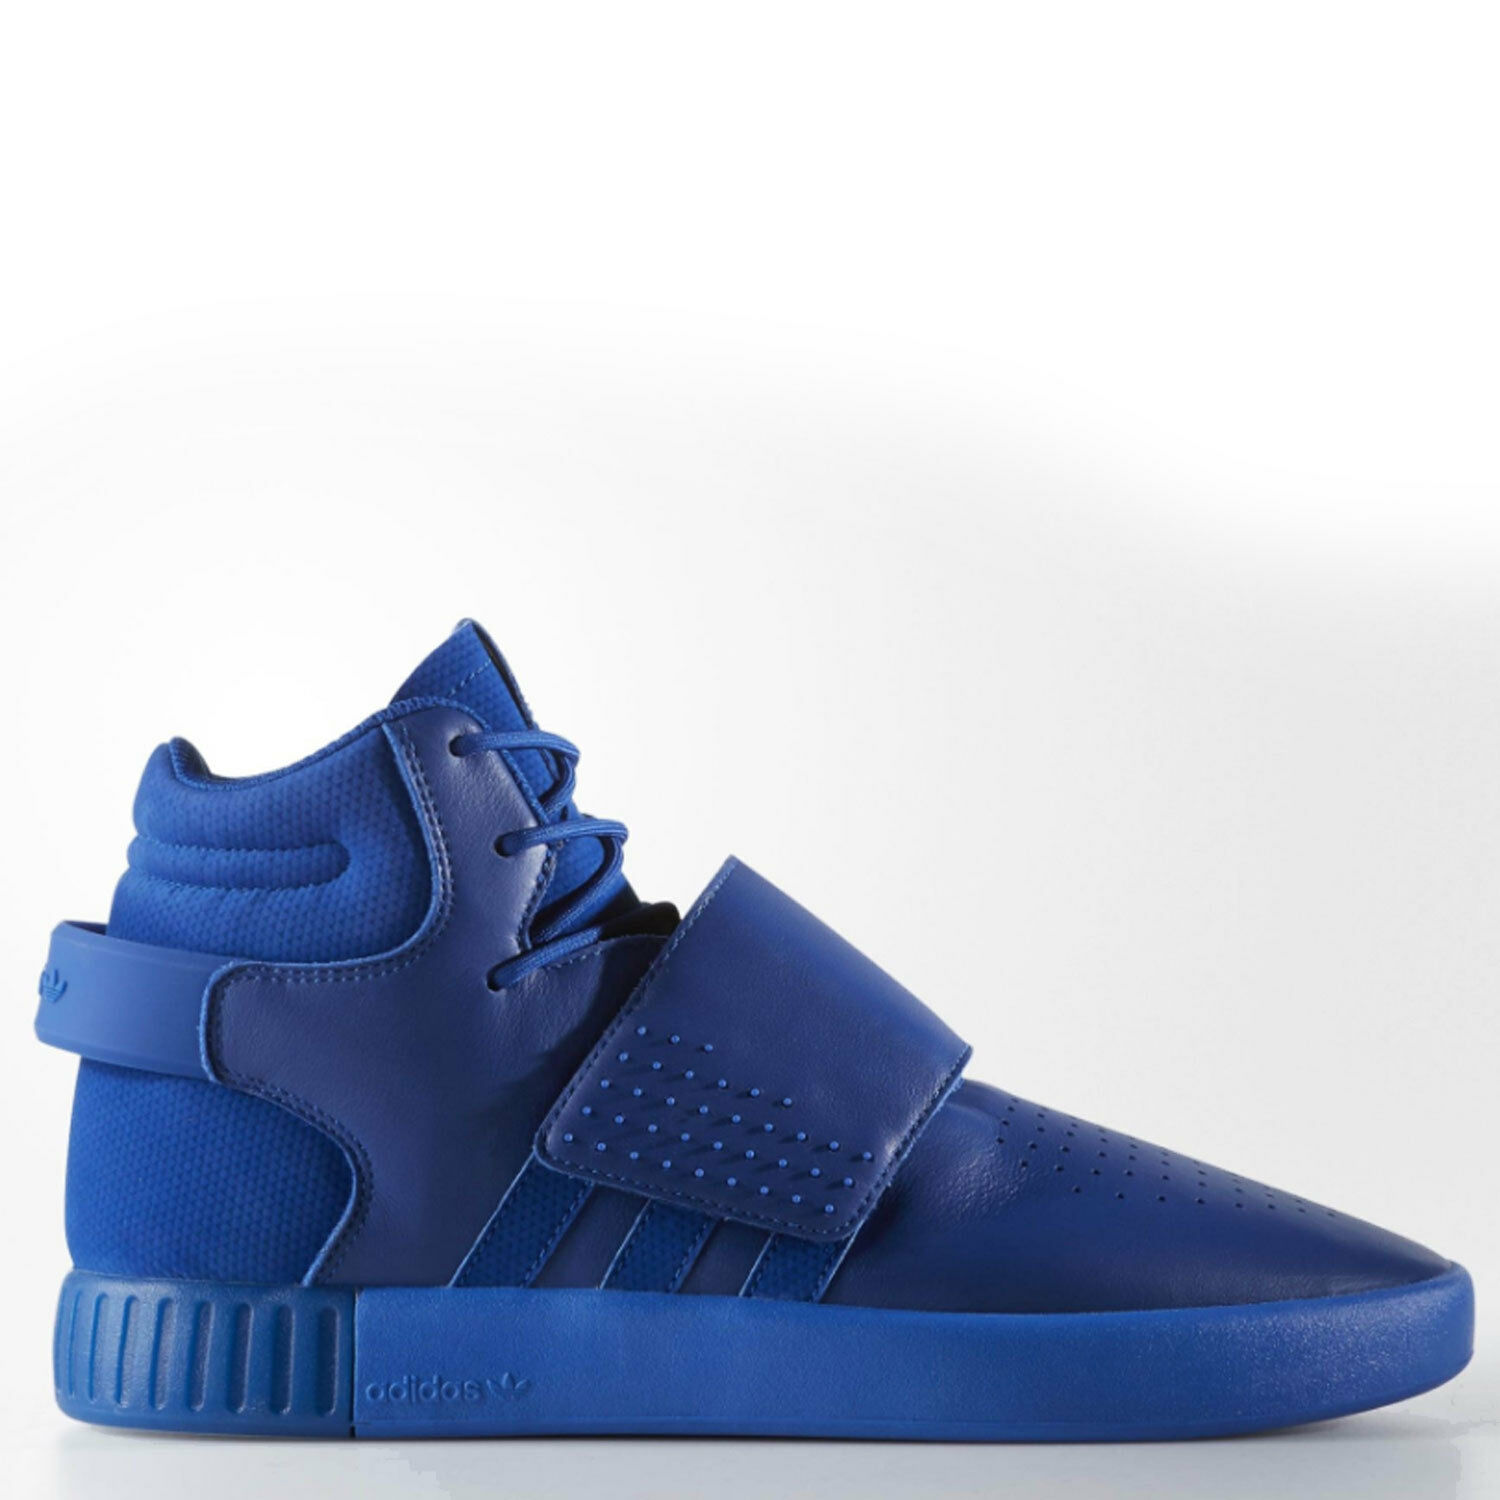 adidas Originals Men's Tubular Invader Blue Strap Trainers Fashion Sneakers Blue Invader 5dd22c